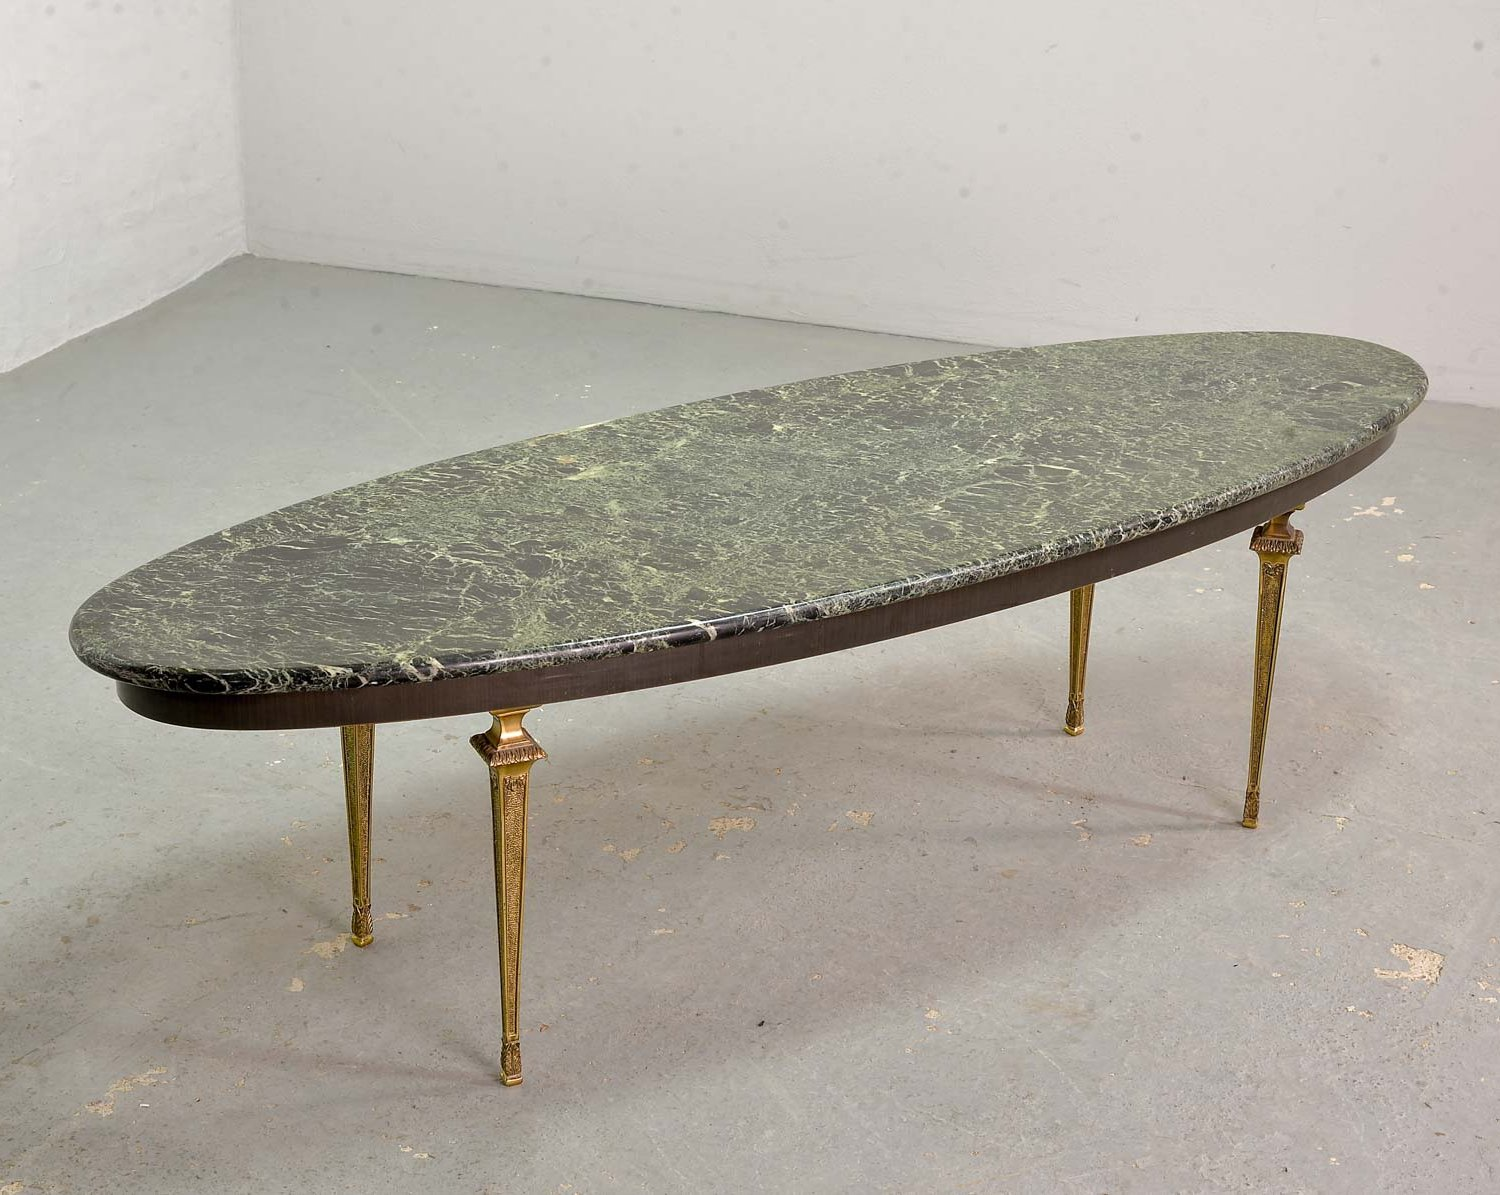 Green Marble Oval Coffee Table With Decorative Brass Feet France 1950s 117669